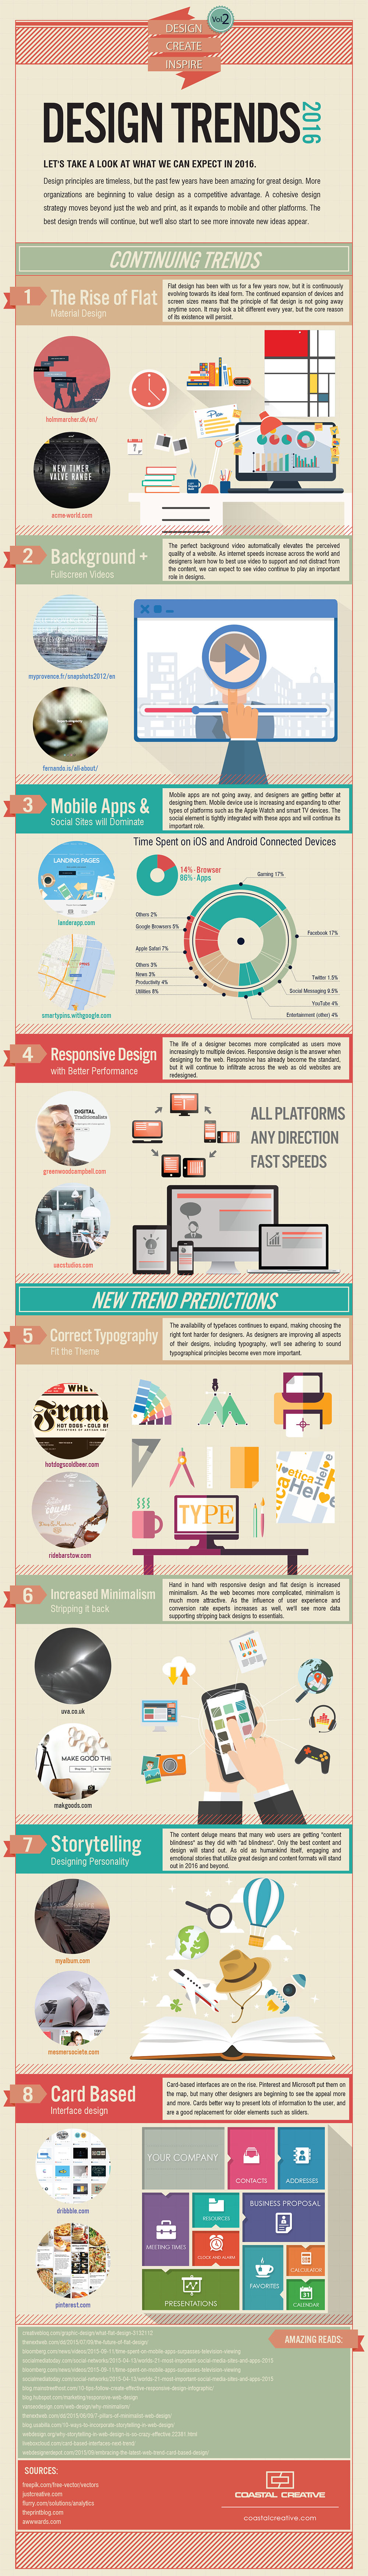 new design trends in 2016